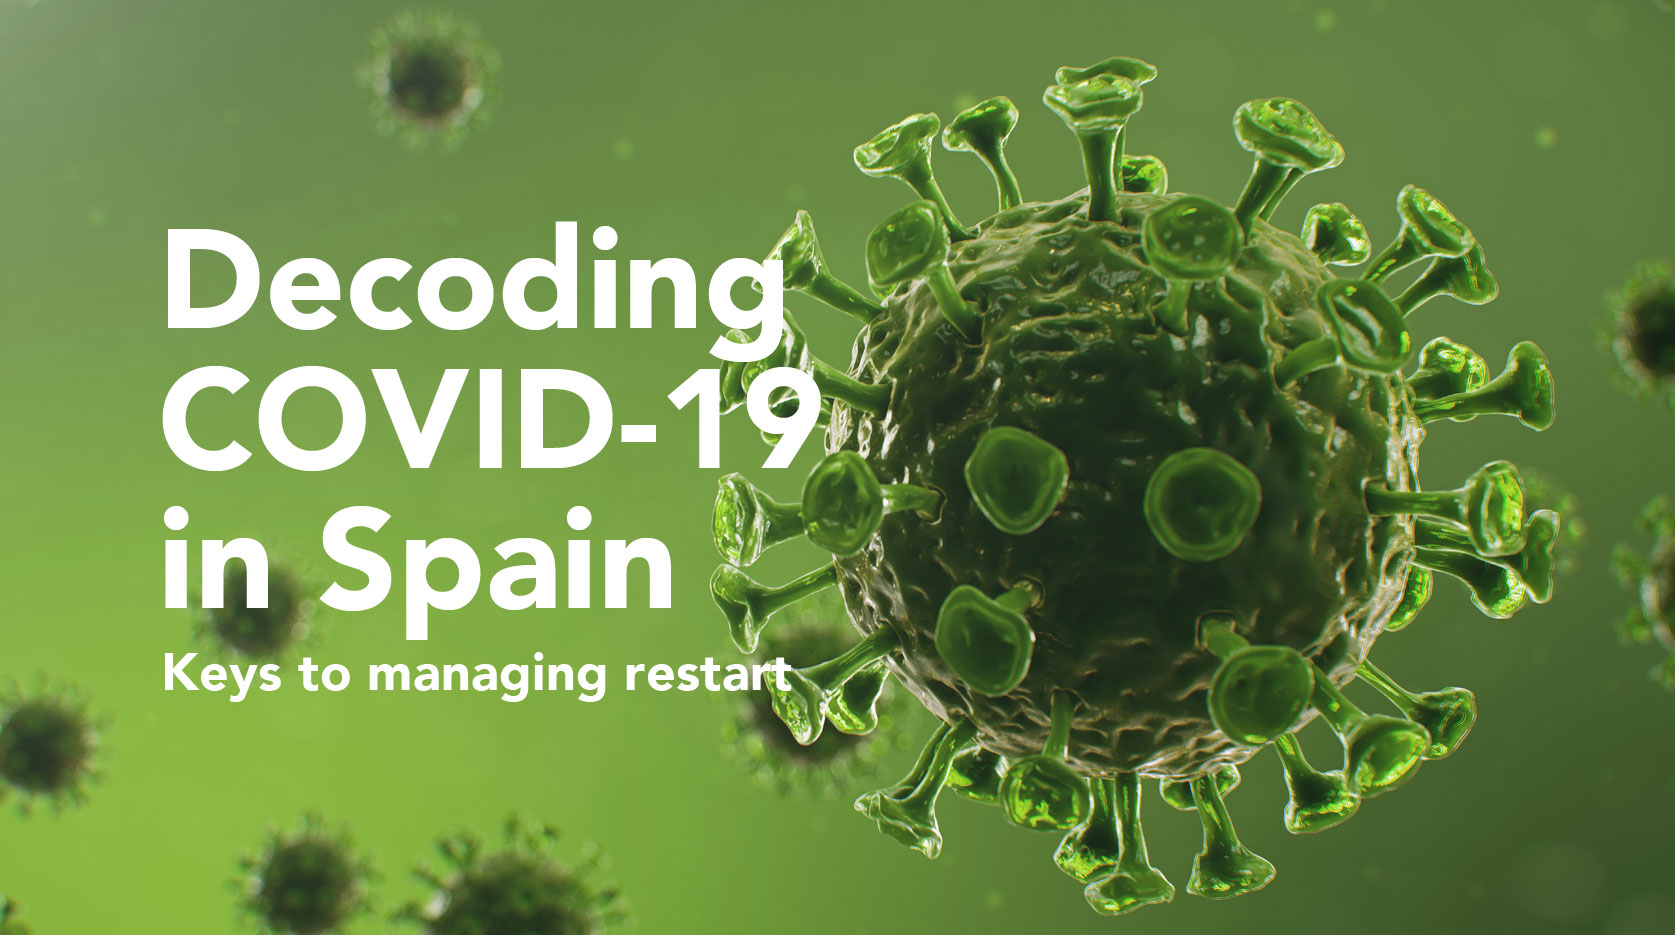 Decoding COVID-19 in Spain